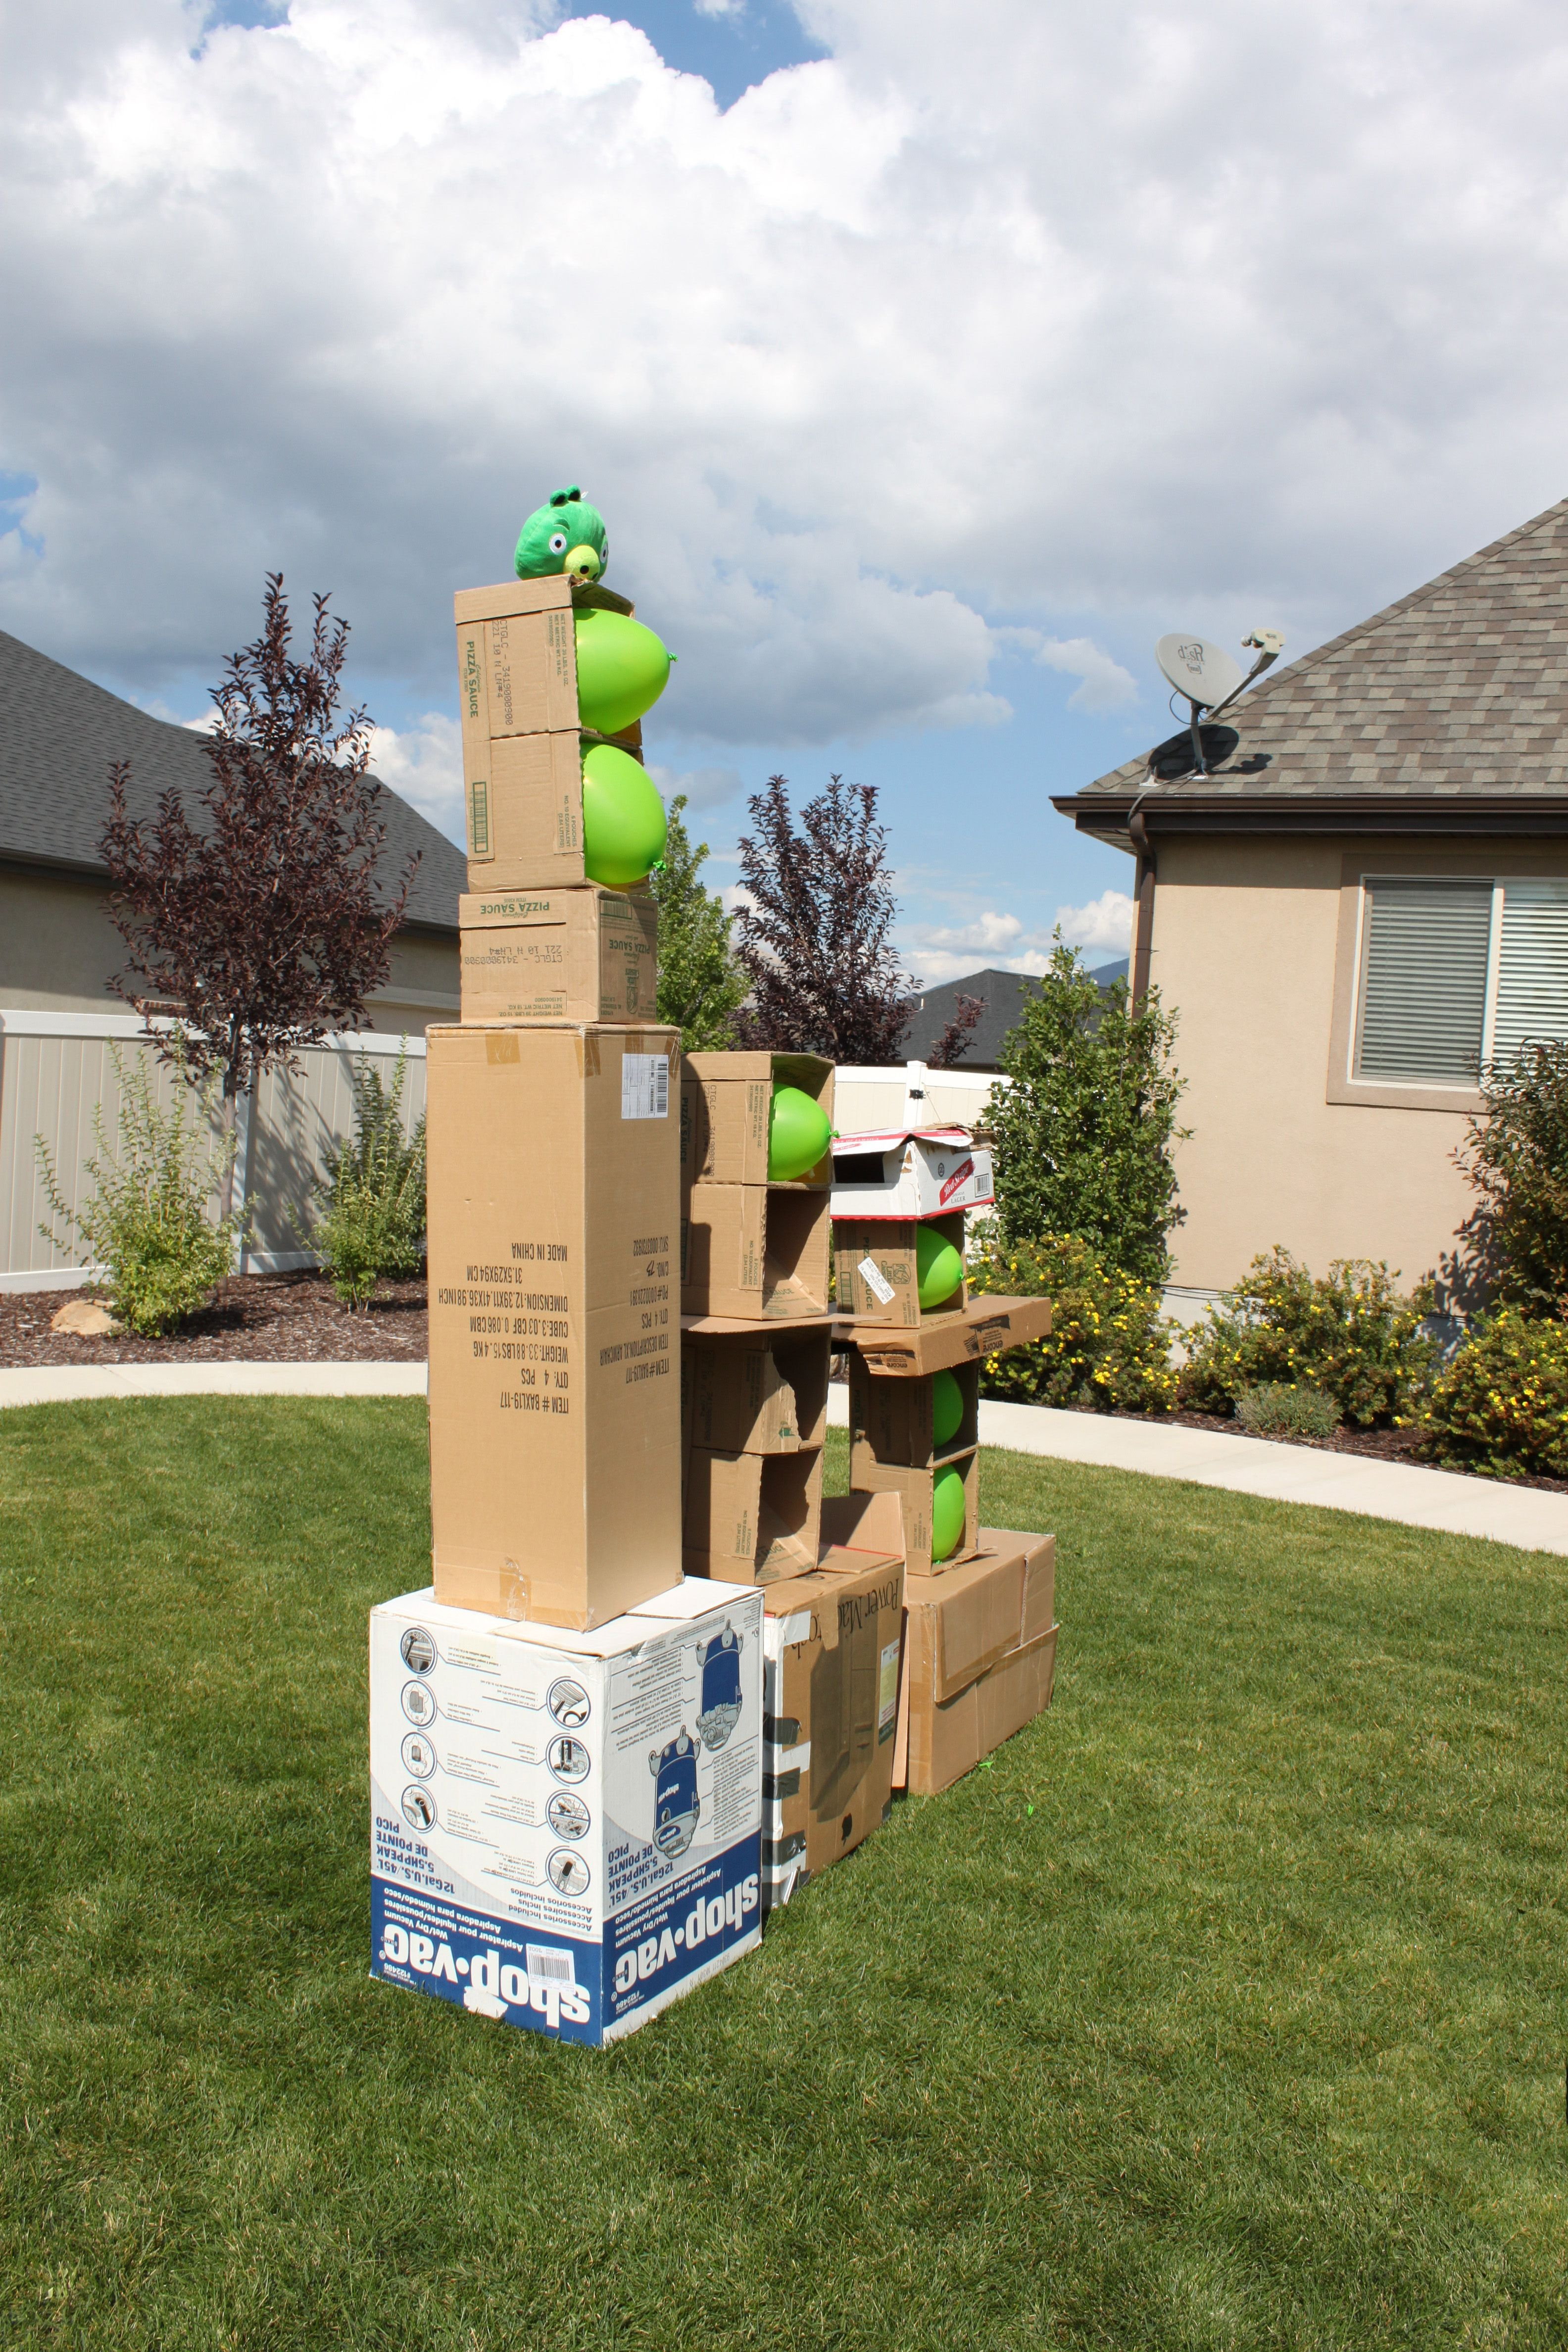 Angry Birds party activity idea build a tower from cardboard